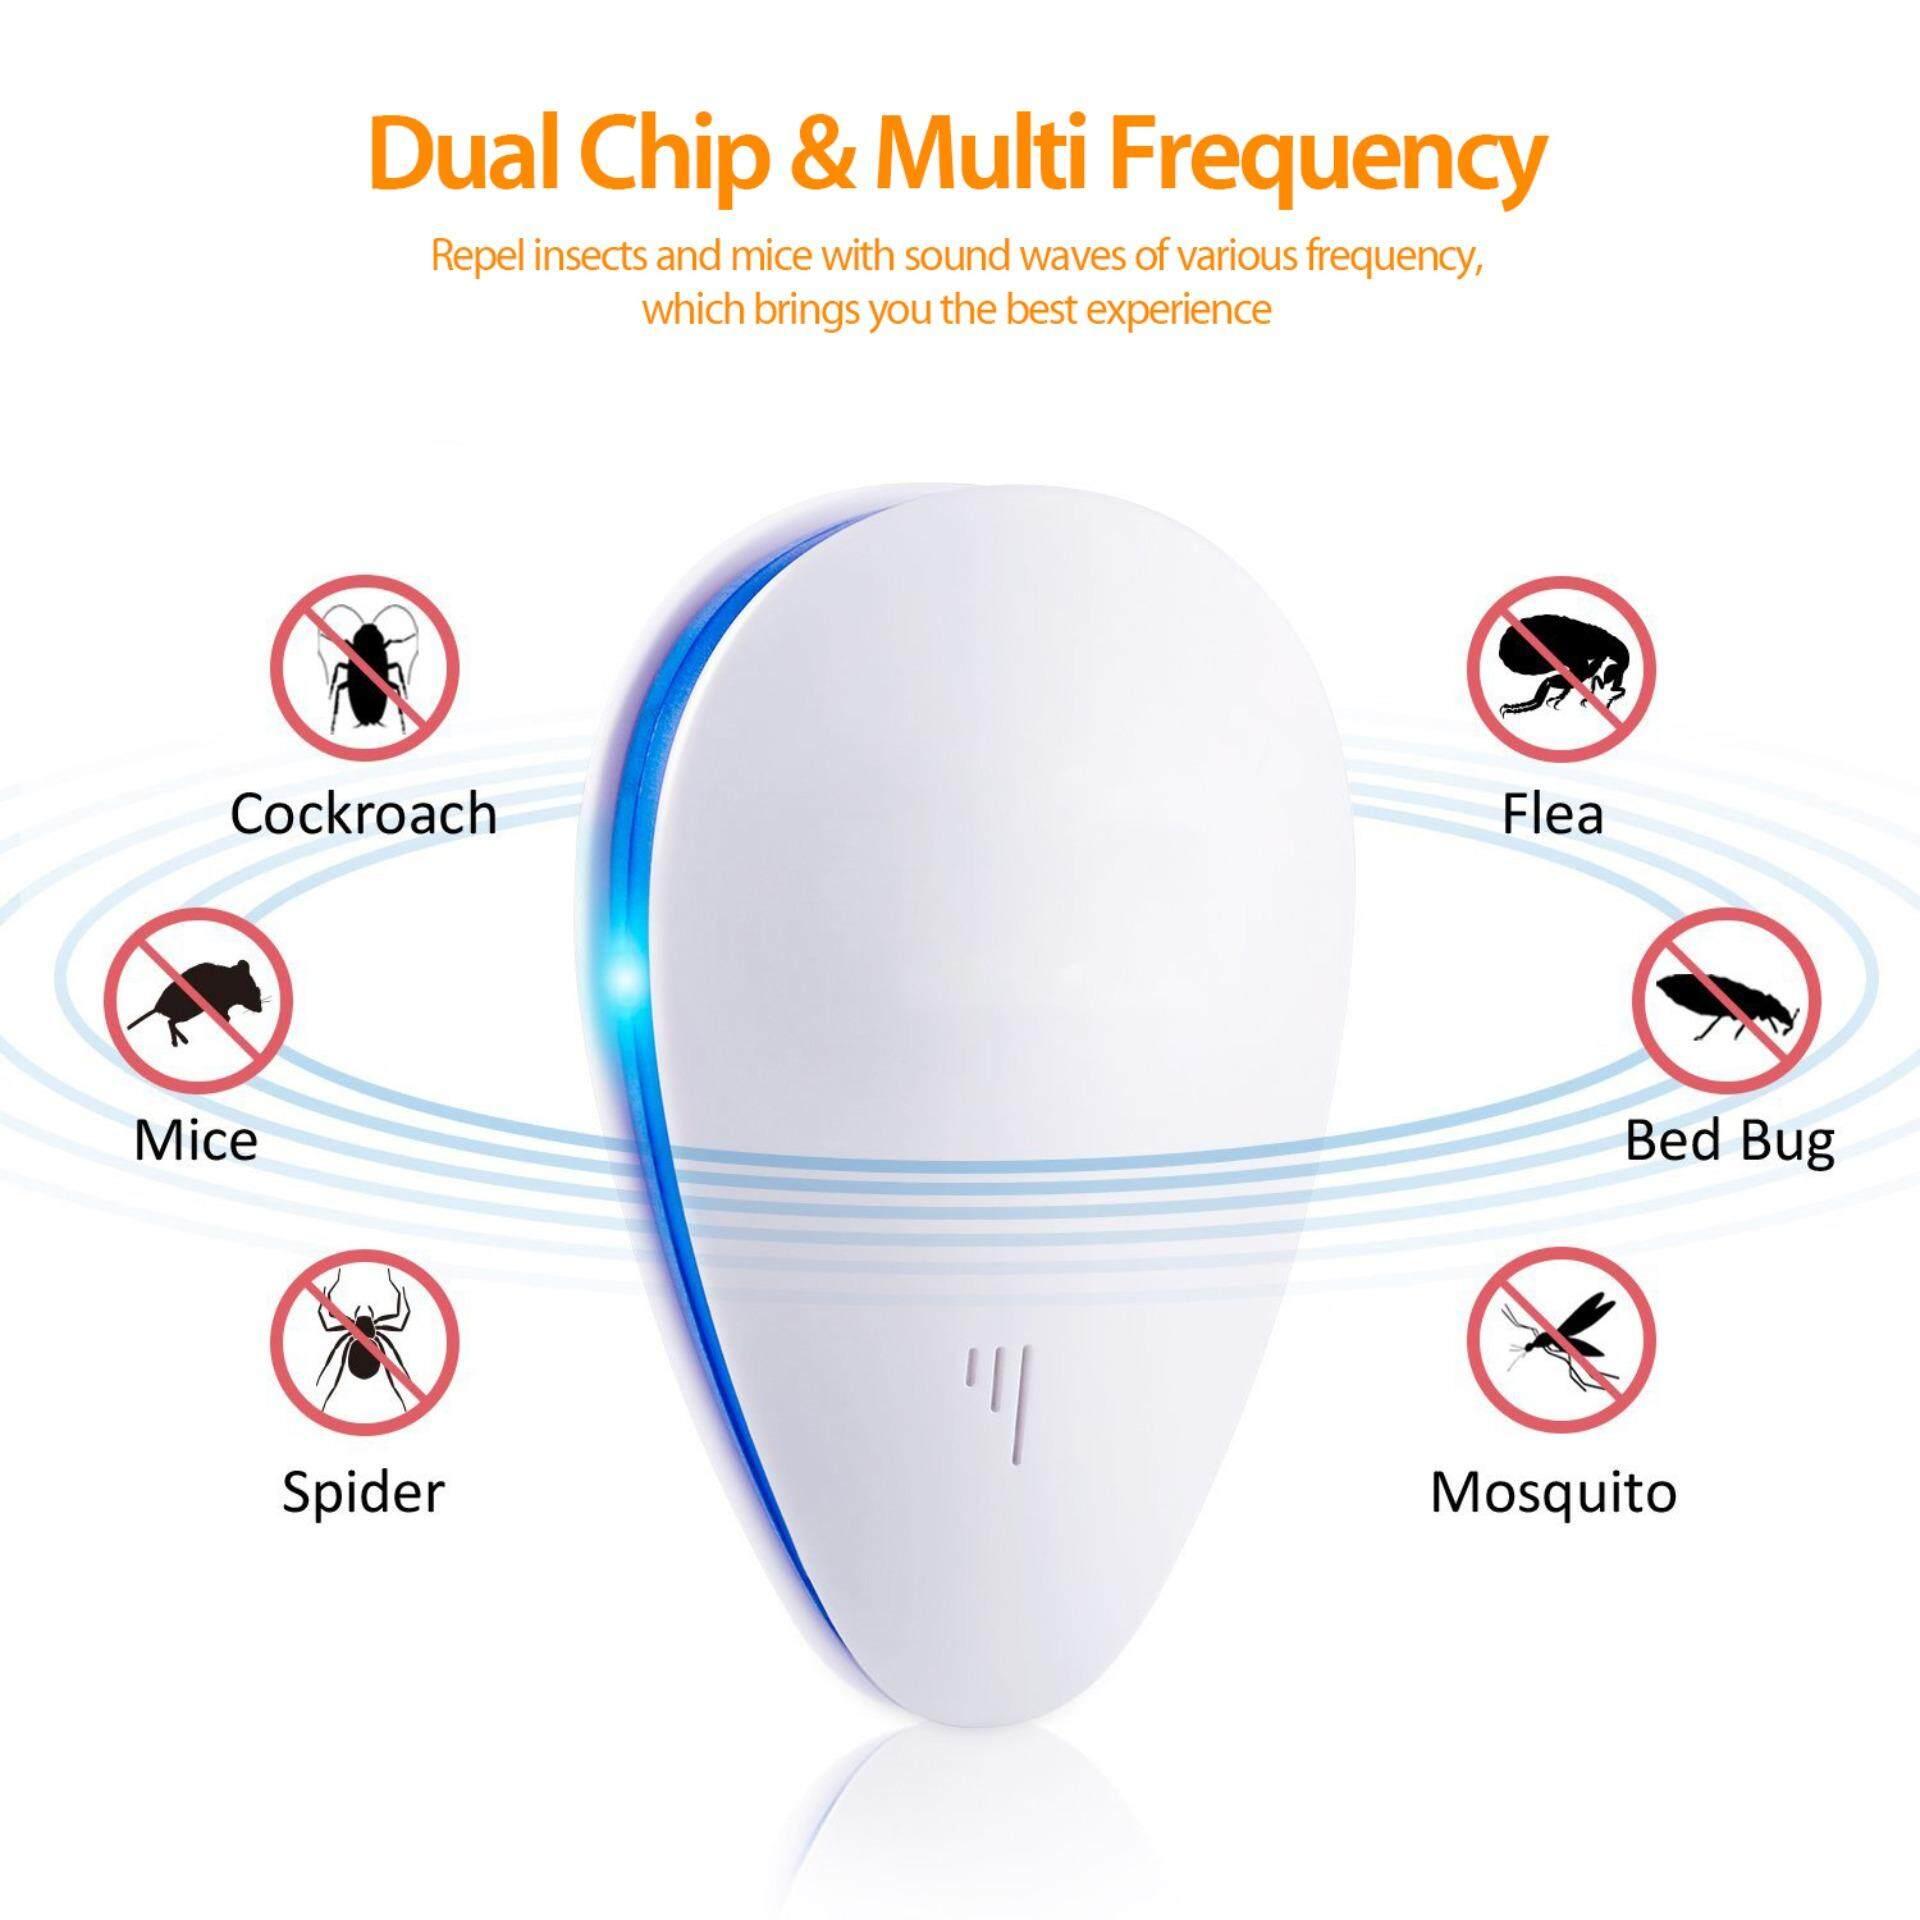 Ultrasonic Pest Control Repellent Plug In - Insects Repellent - Repels Mice, Bed Bugs, Mosquitoes, Spiders - Human/Pet Safe (UK/US/EU Plug) AC 90-250V - intl